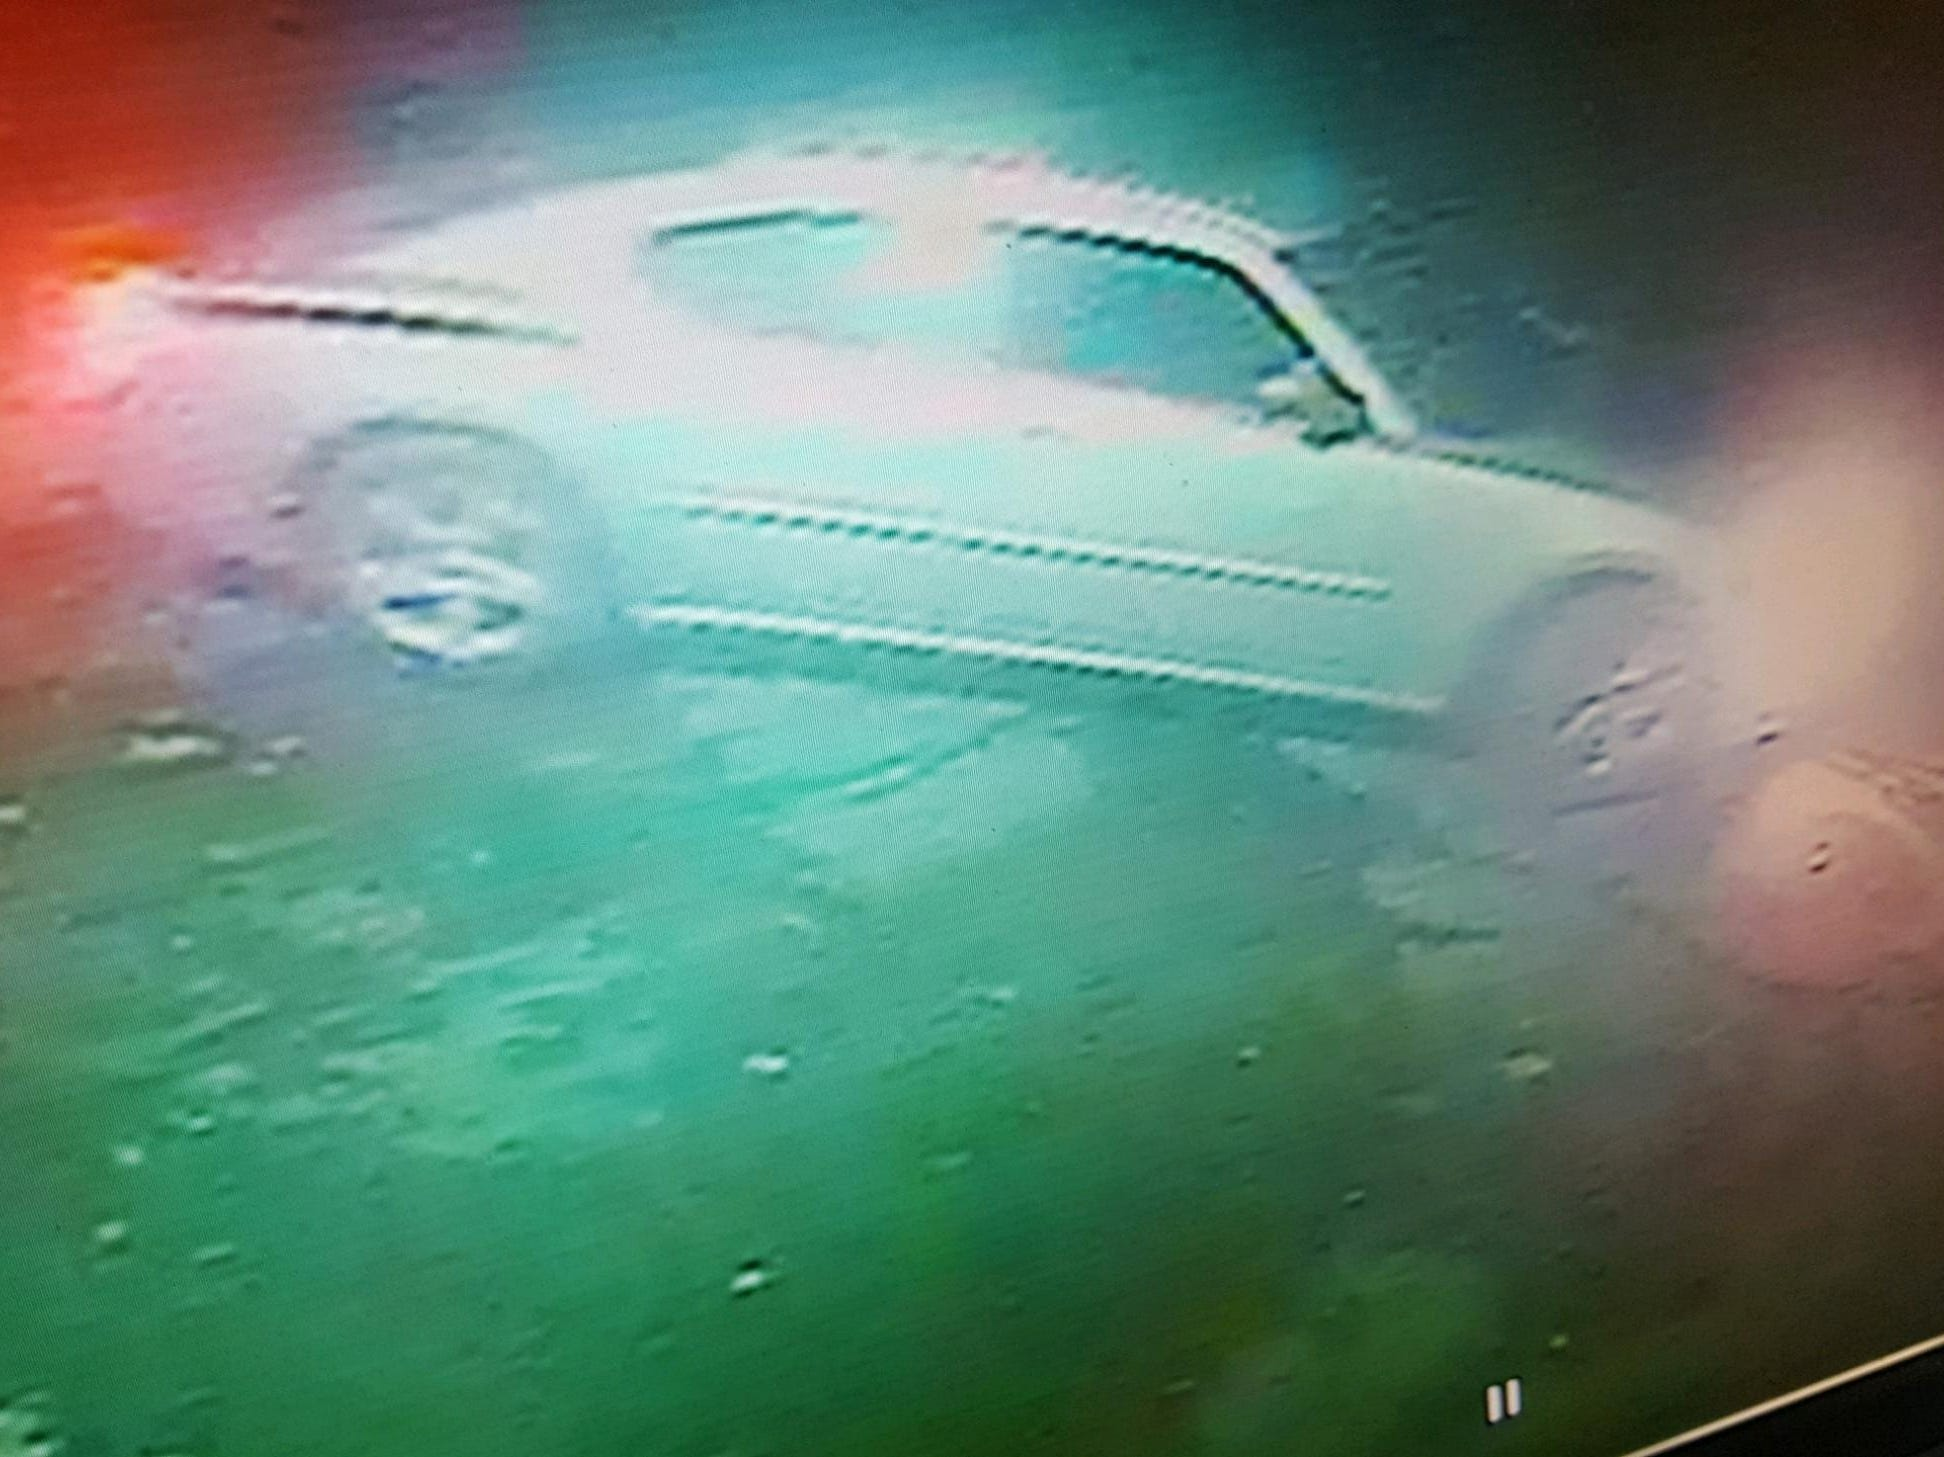 Surveillance footage of the vehicle of a suspect who stole cash and liquor from Crossroads Bar on National Road.